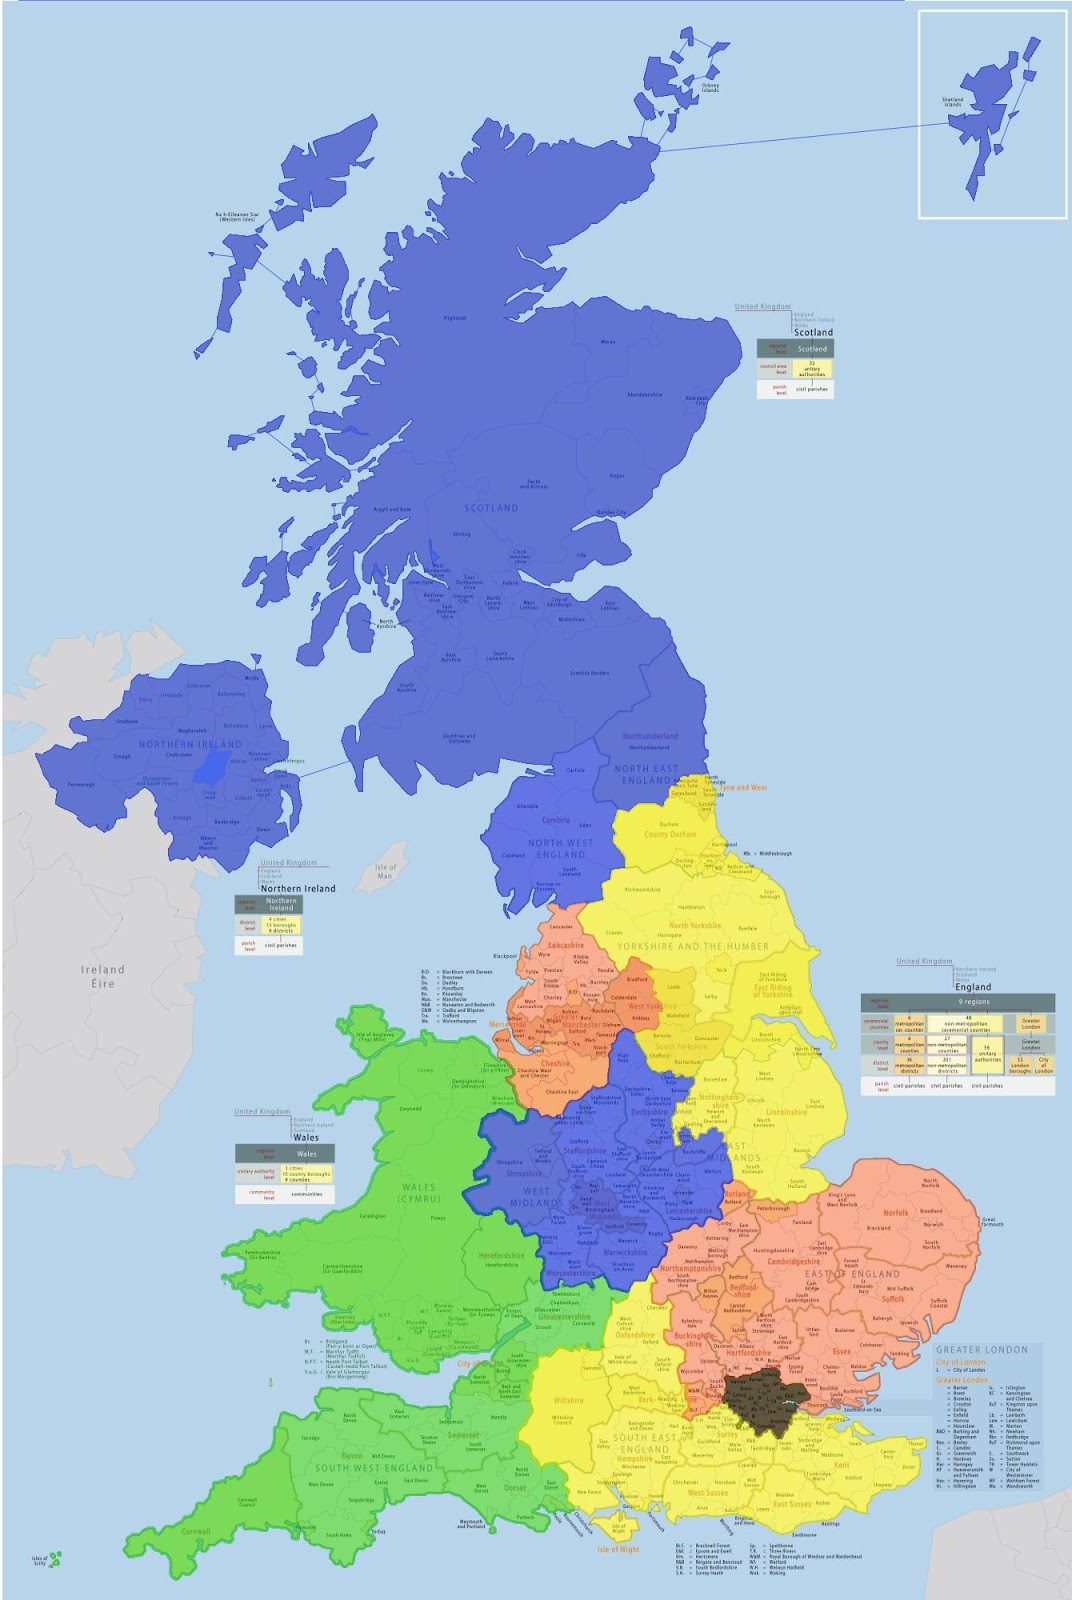 The UK split up into areas where population is equal to that of London